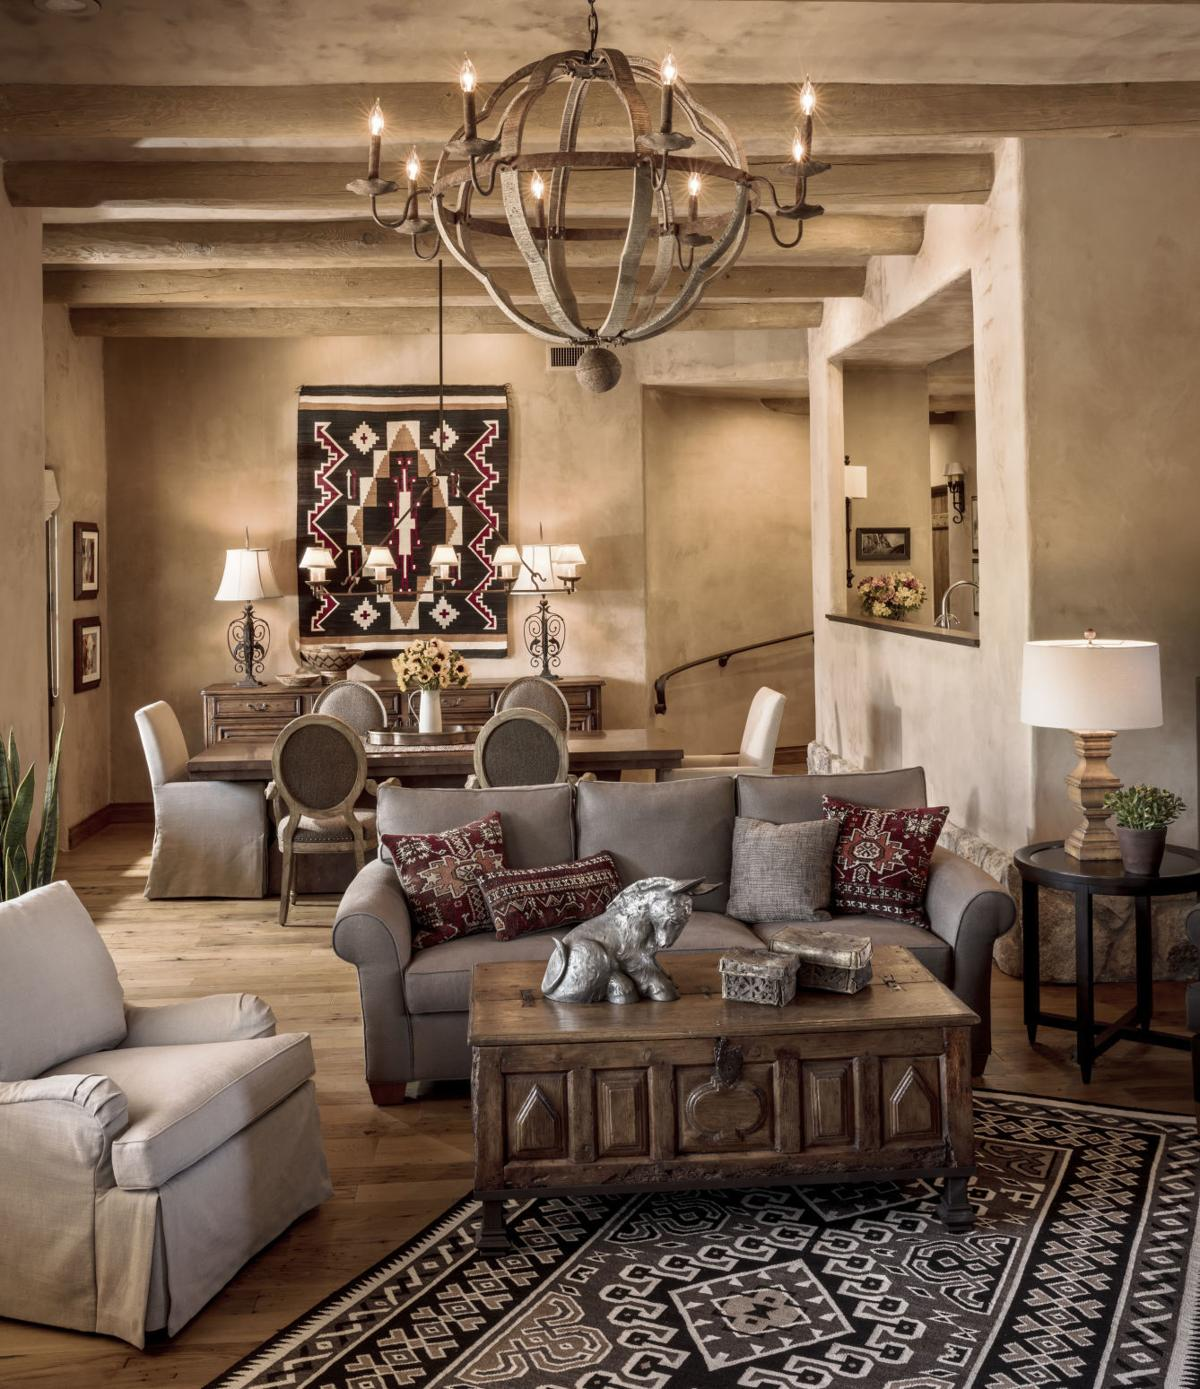 Warm Rustic Home Decorating Pinterest: Warm And Casual Southwest Style Is Hot In Decor